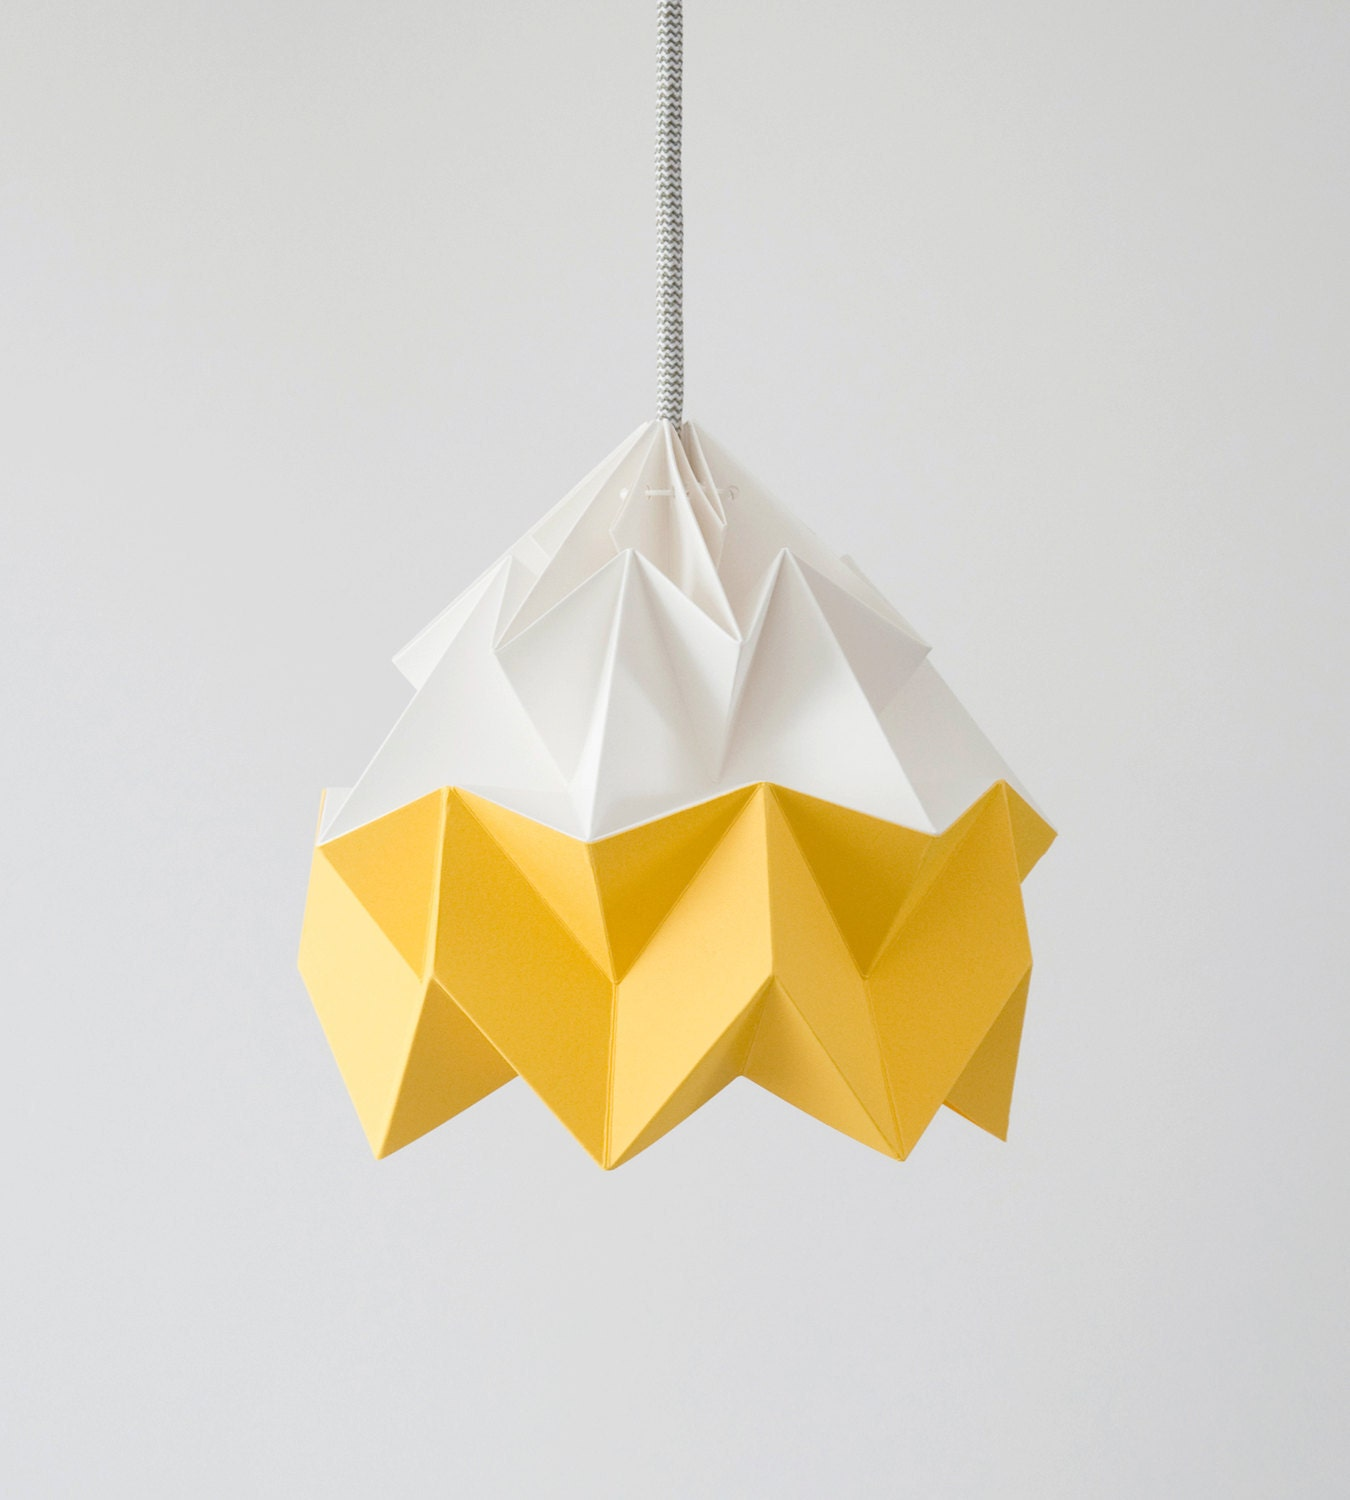 moth origami lampshade gold yellow and white. Black Bedroom Furniture Sets. Home Design Ideas